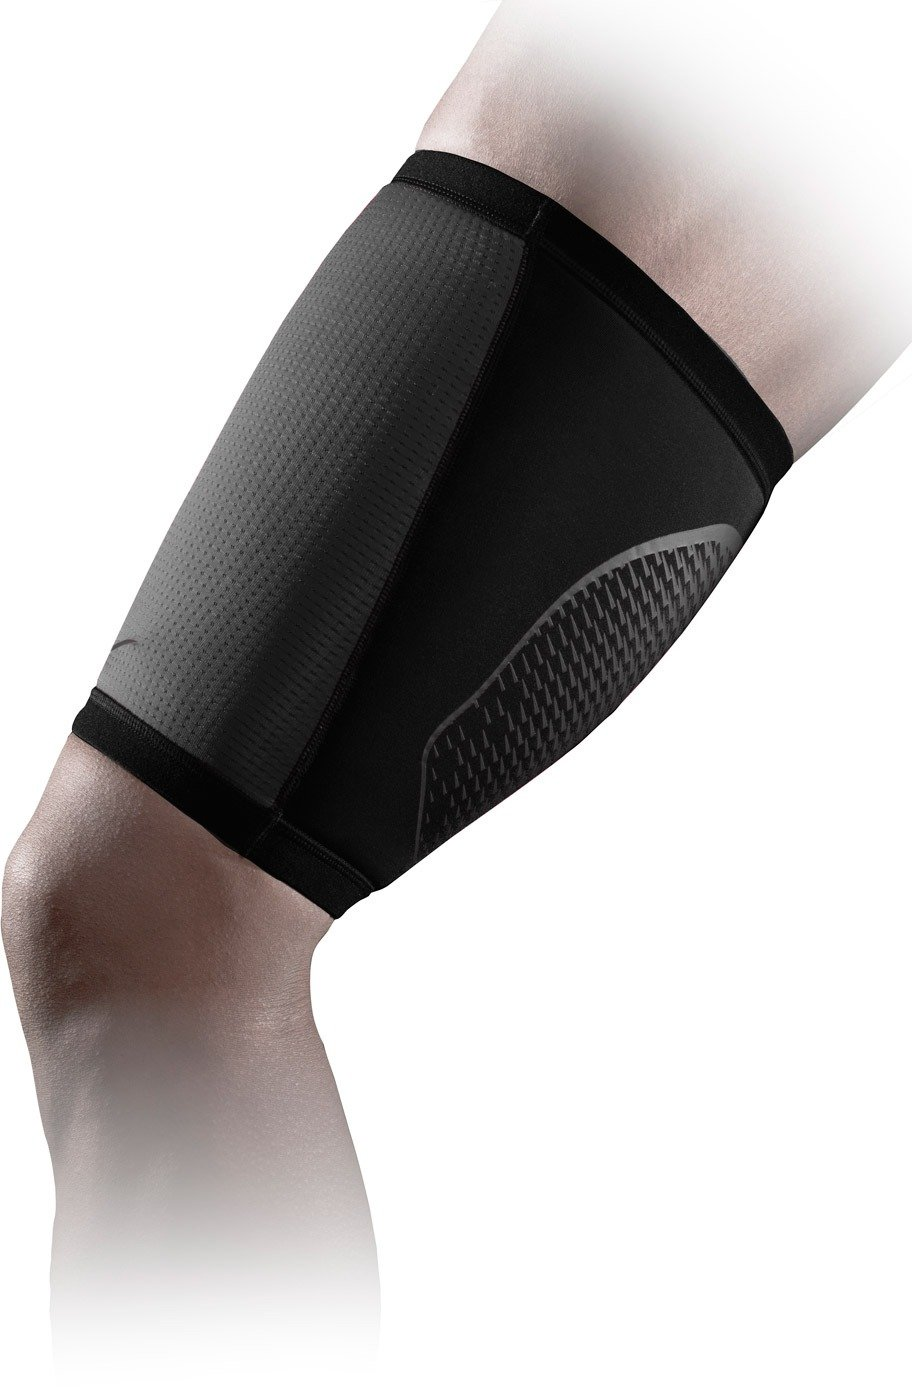 Nike Pro Hyperstong Thigh Sleeve 3.0